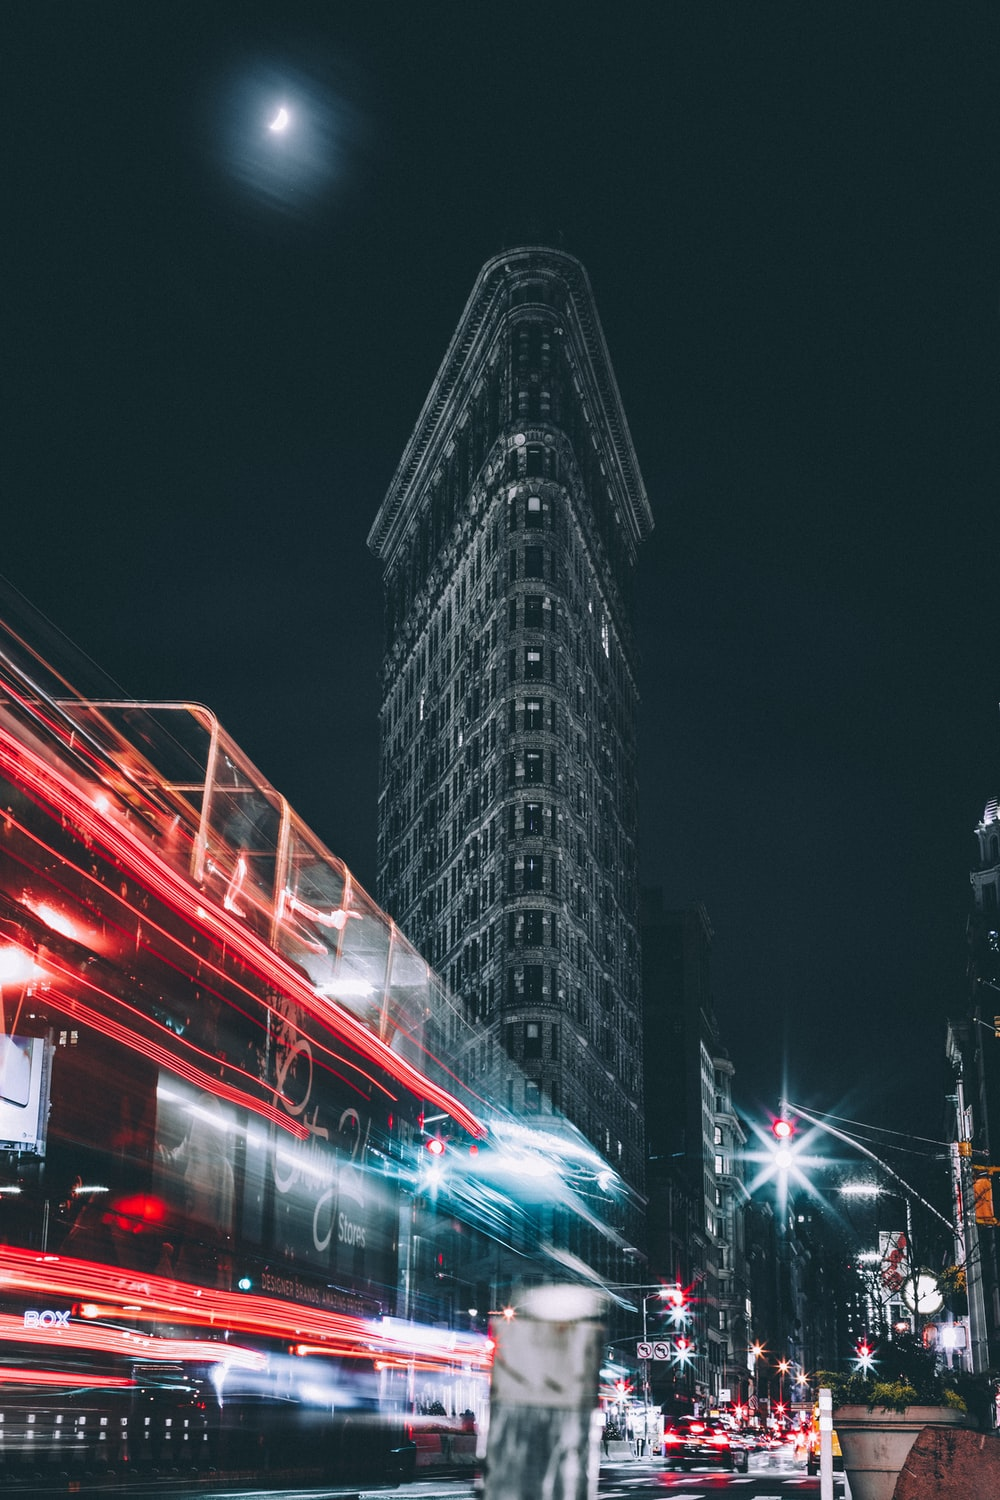 time lapse photography of flatiron building, New York city